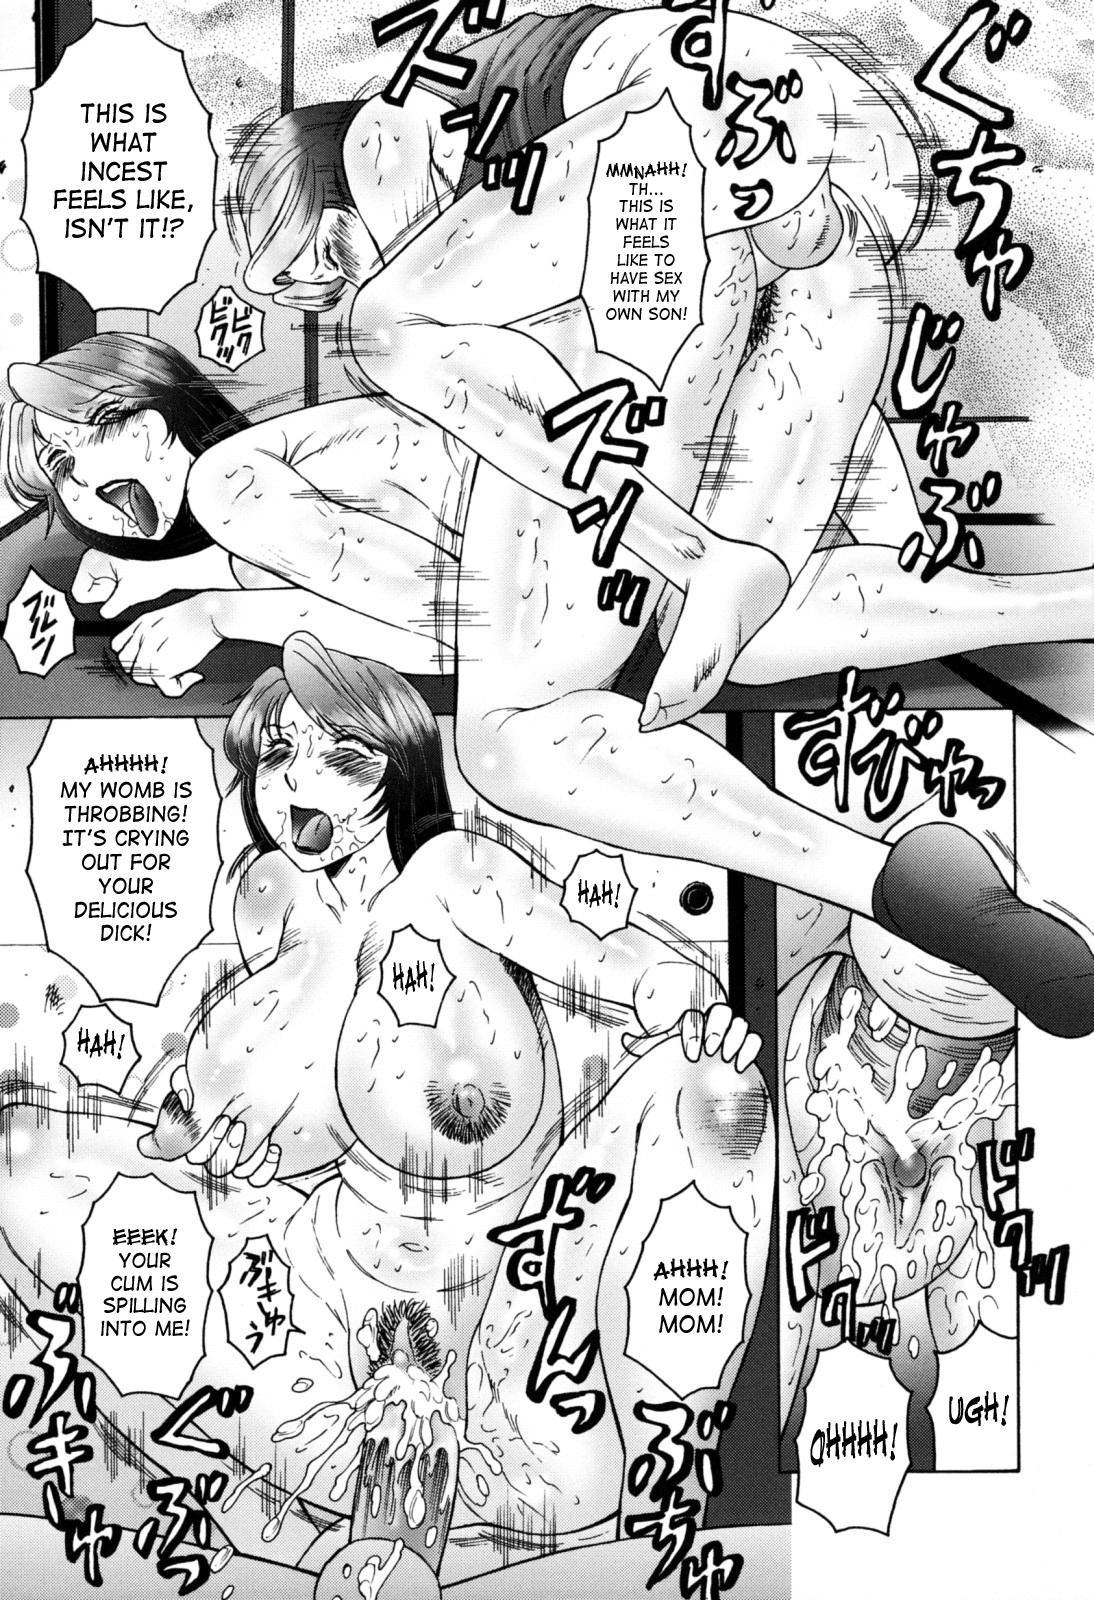 [Fuusen Club] Boshino Toriko - The Captive of Mother and the Son | Enslaved Mother and Son Ch. 1-5 [English] [SaHa] 94